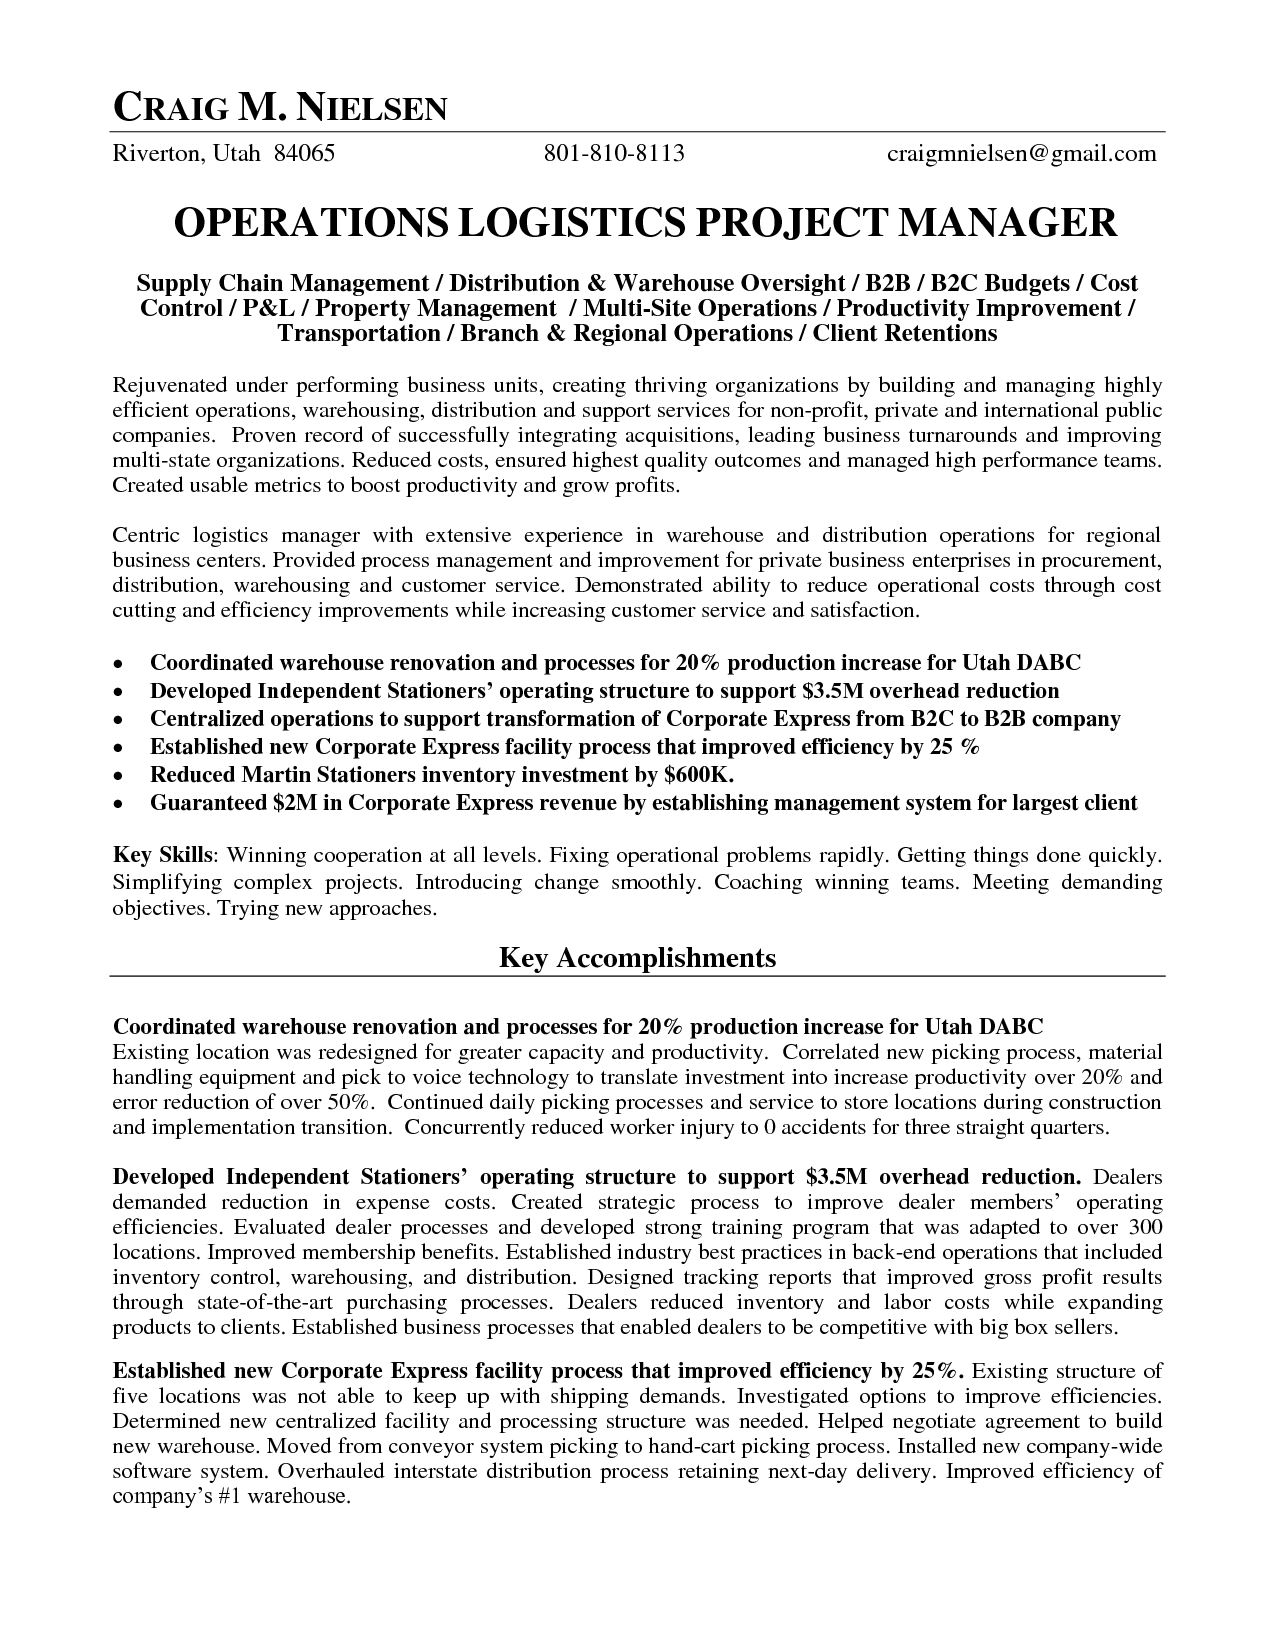 Business Consultant Resume Logistics Operations Manager Resume  Operations Logistics Project